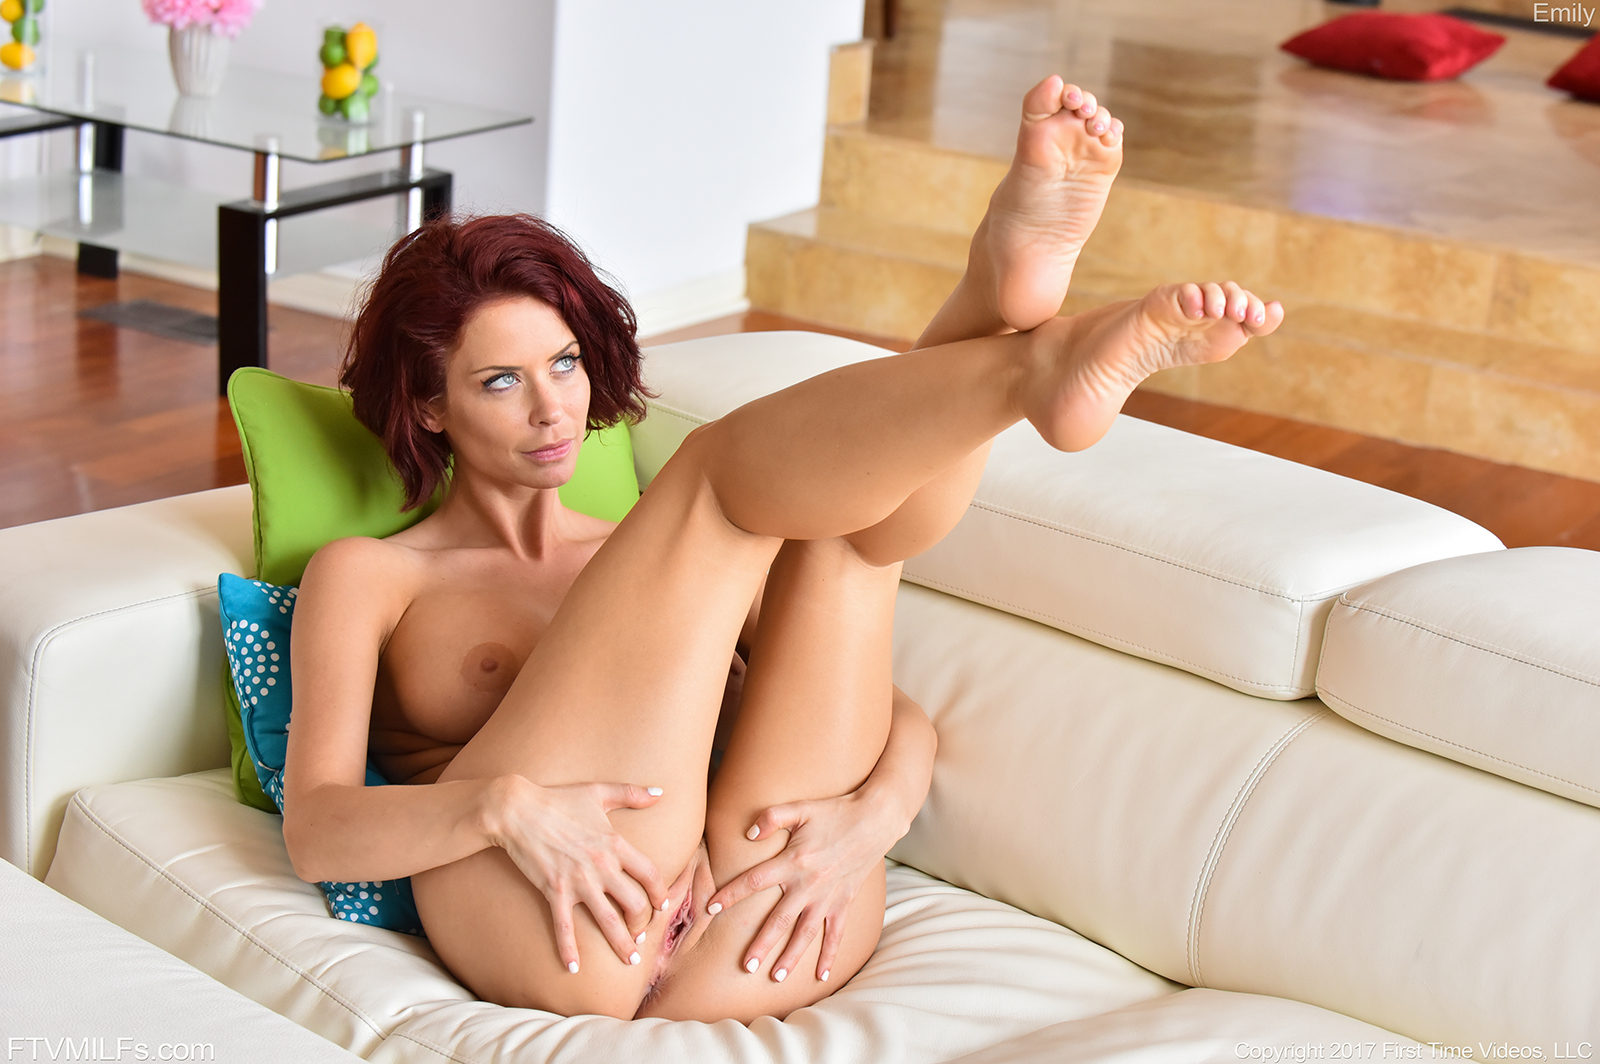 static ftvmilfs galleries emily her morning workout 12